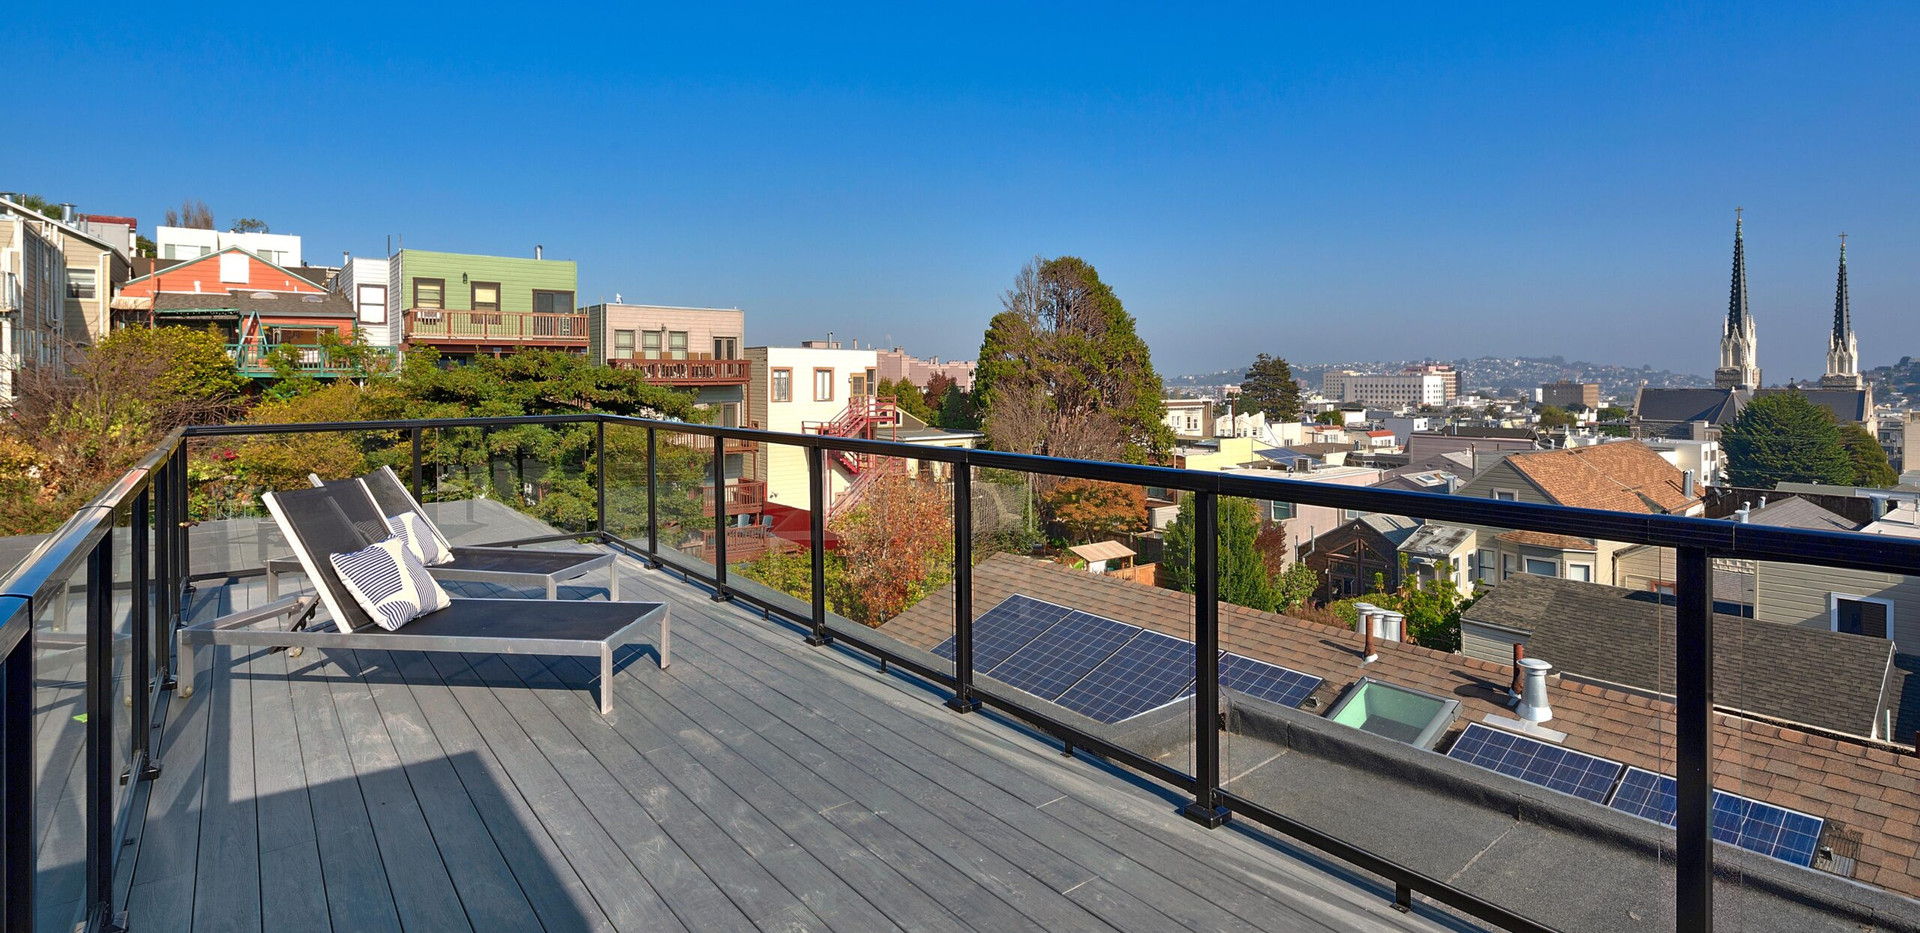 438-29th-St-San-Francisco-55-of-62-scale